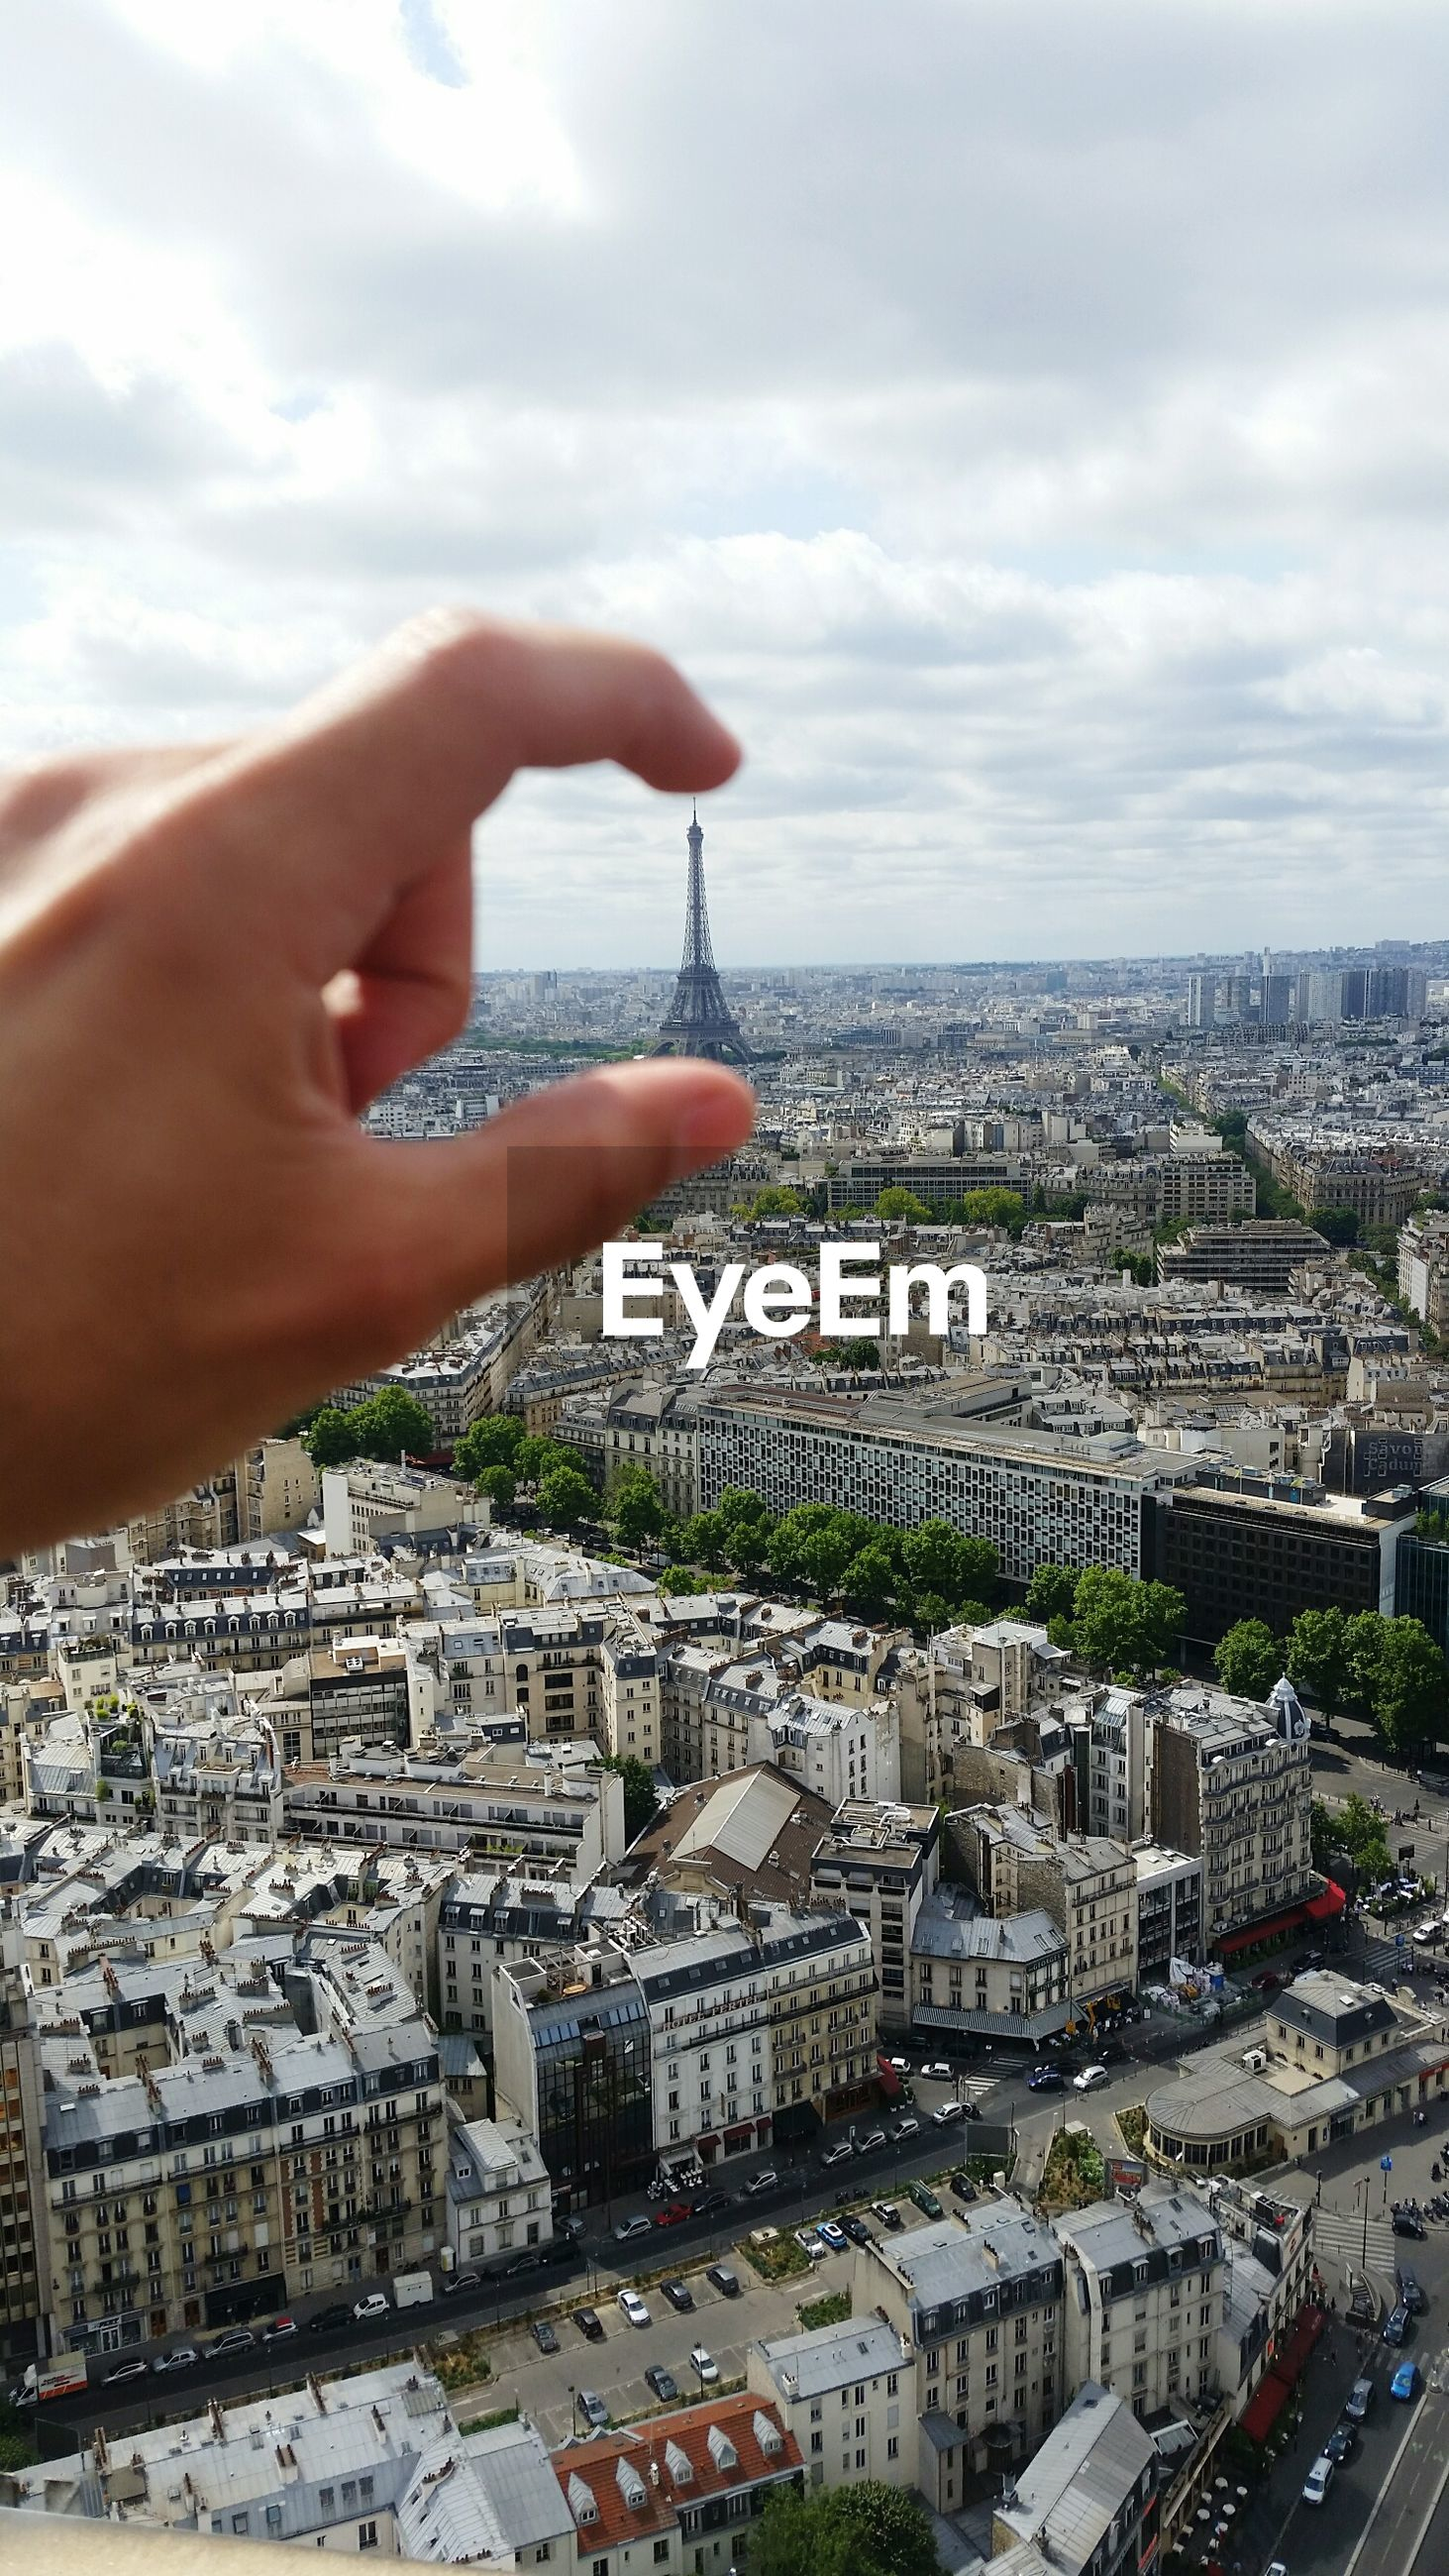 Optical illusion of cropped hand holding eiffel tower